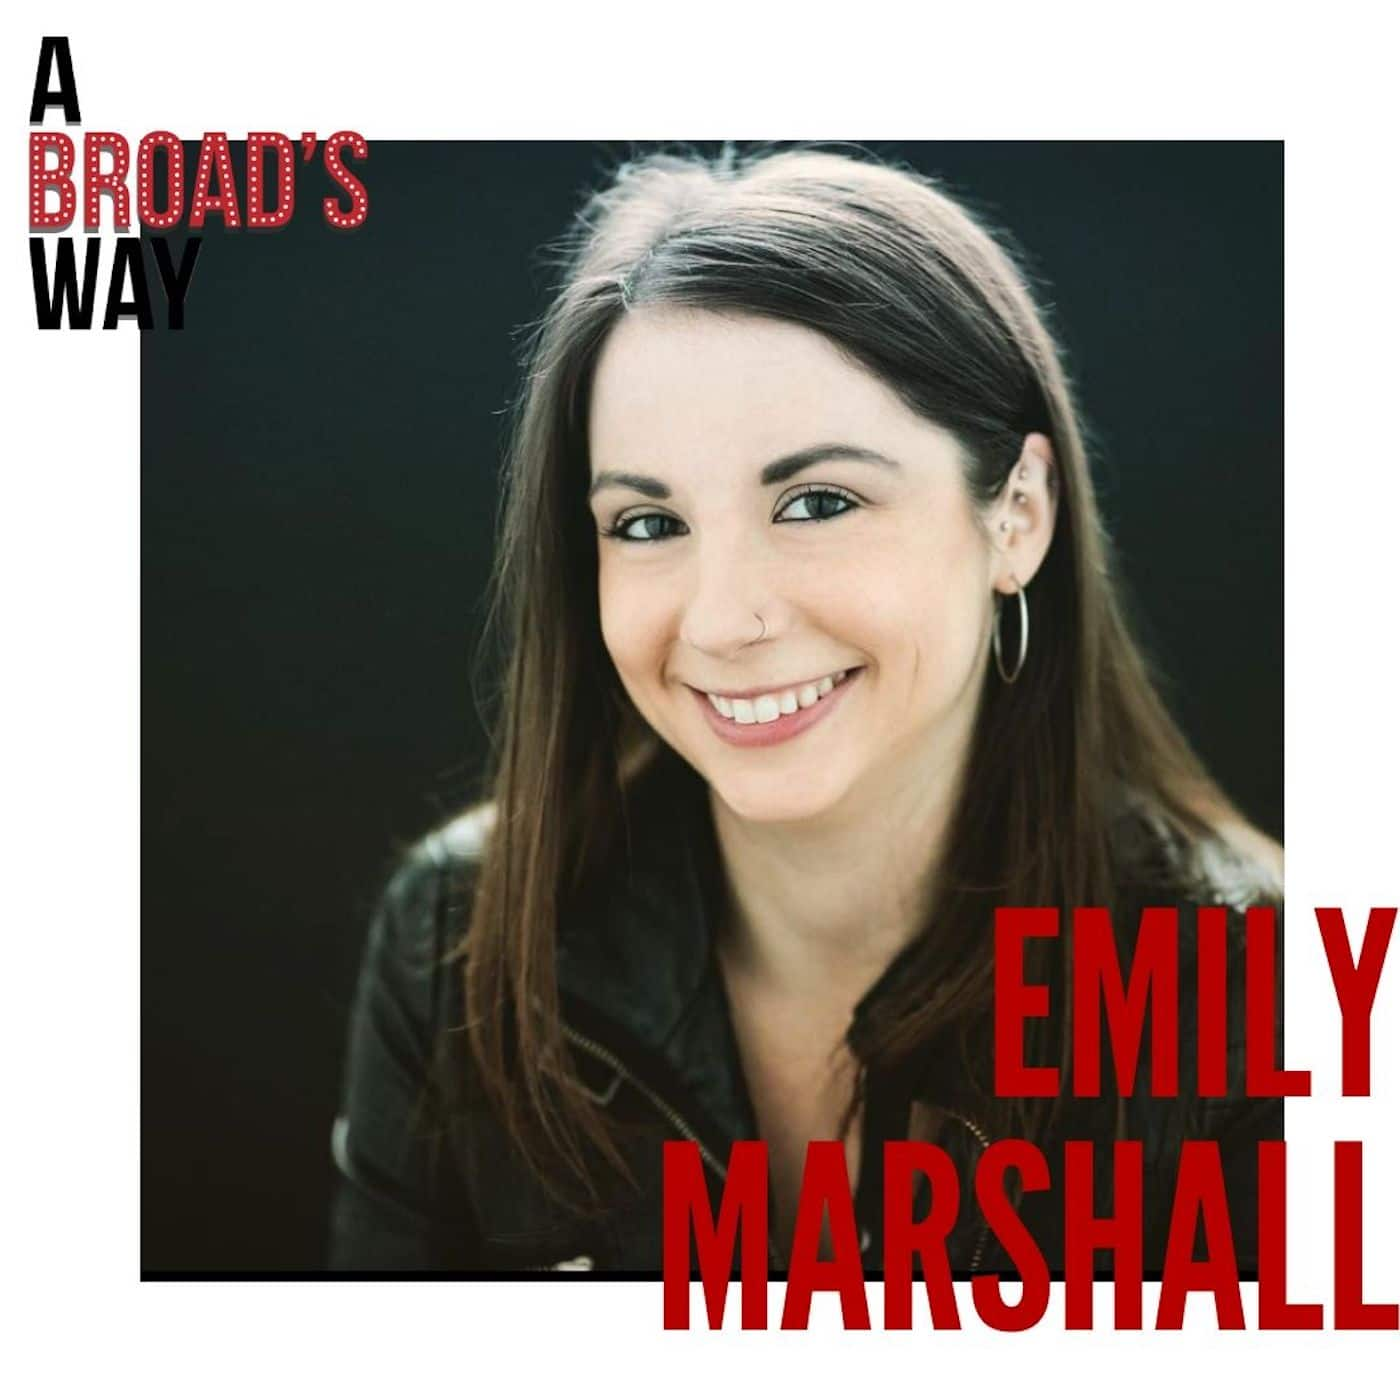 A Broad's Way - Ep18 - Emily Marshall: mastering the music through preparation, confidence, and quick recoveries